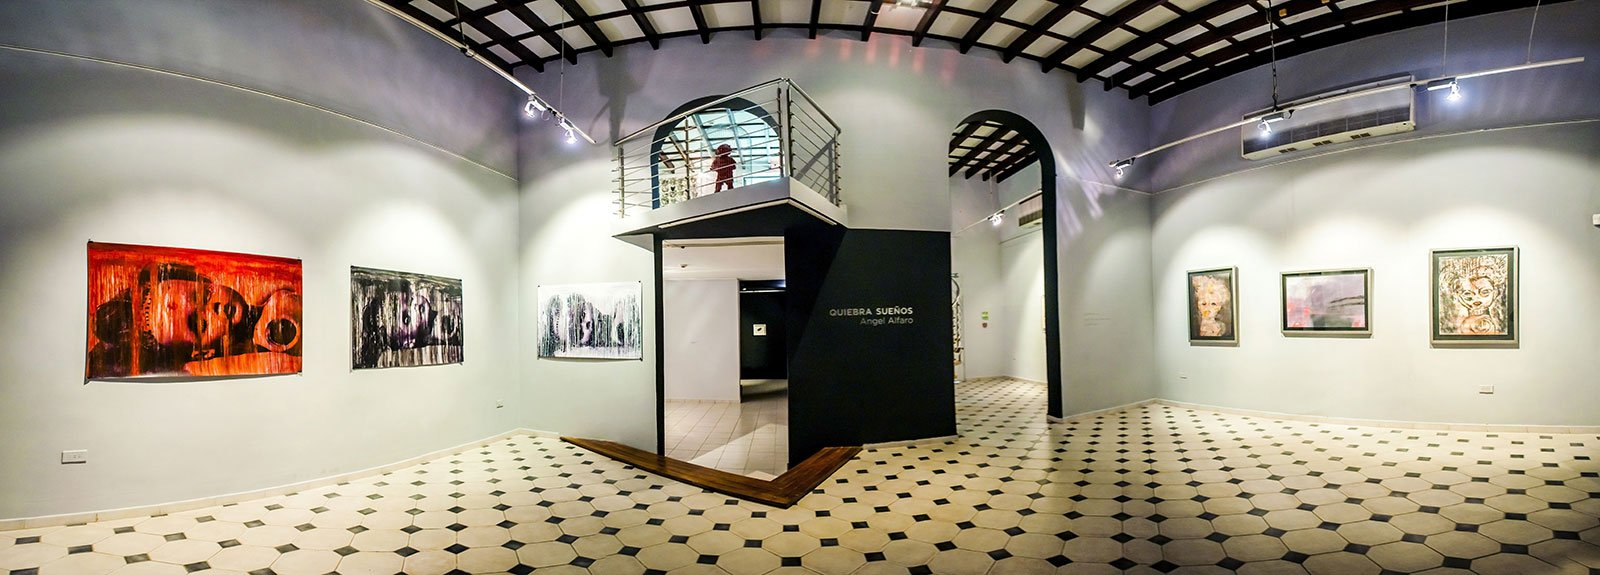 Exhibition at Villa Manuela gallery in Vedado